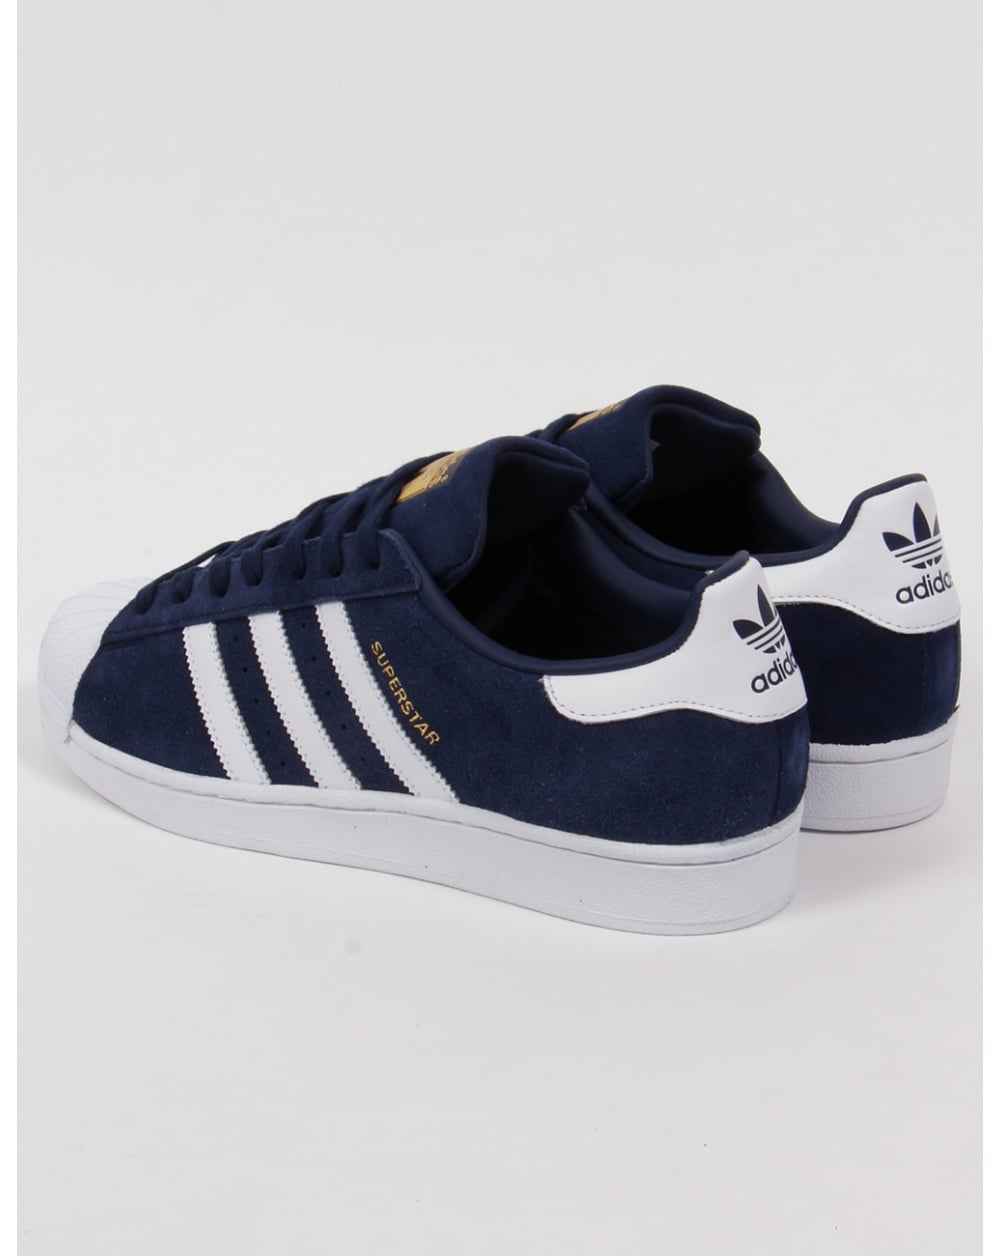 Adidas Superstar Suede Trainers